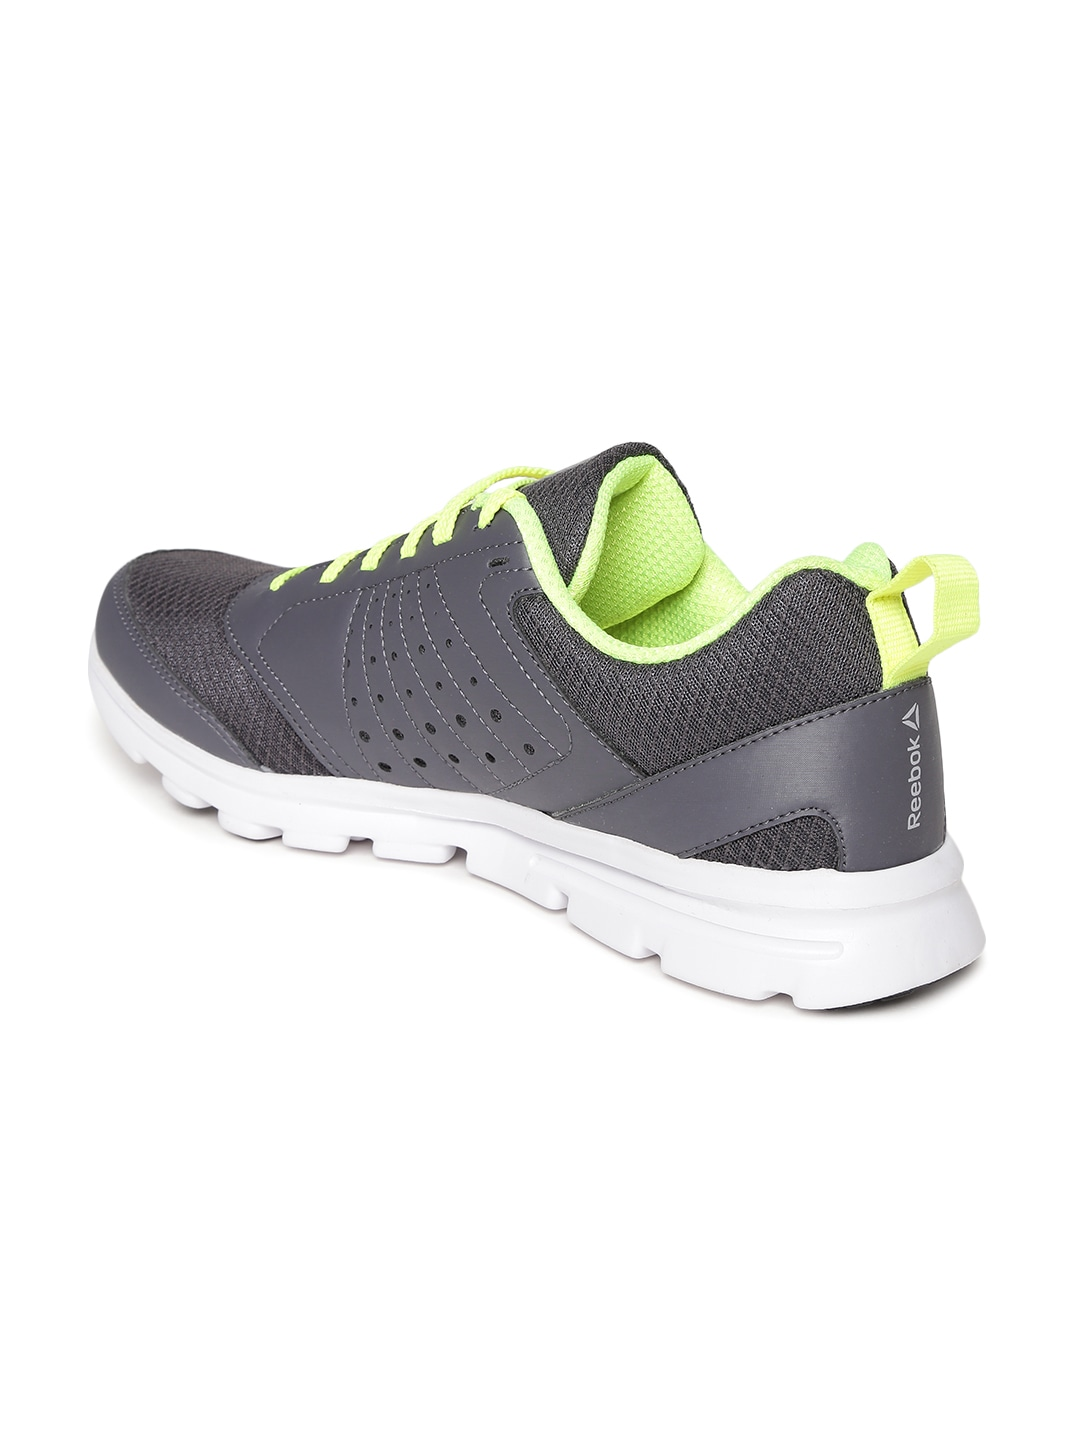 ccb91efe3b07 Flipkart Reebok Sports Shoes Offer - Style Guru  Fashion